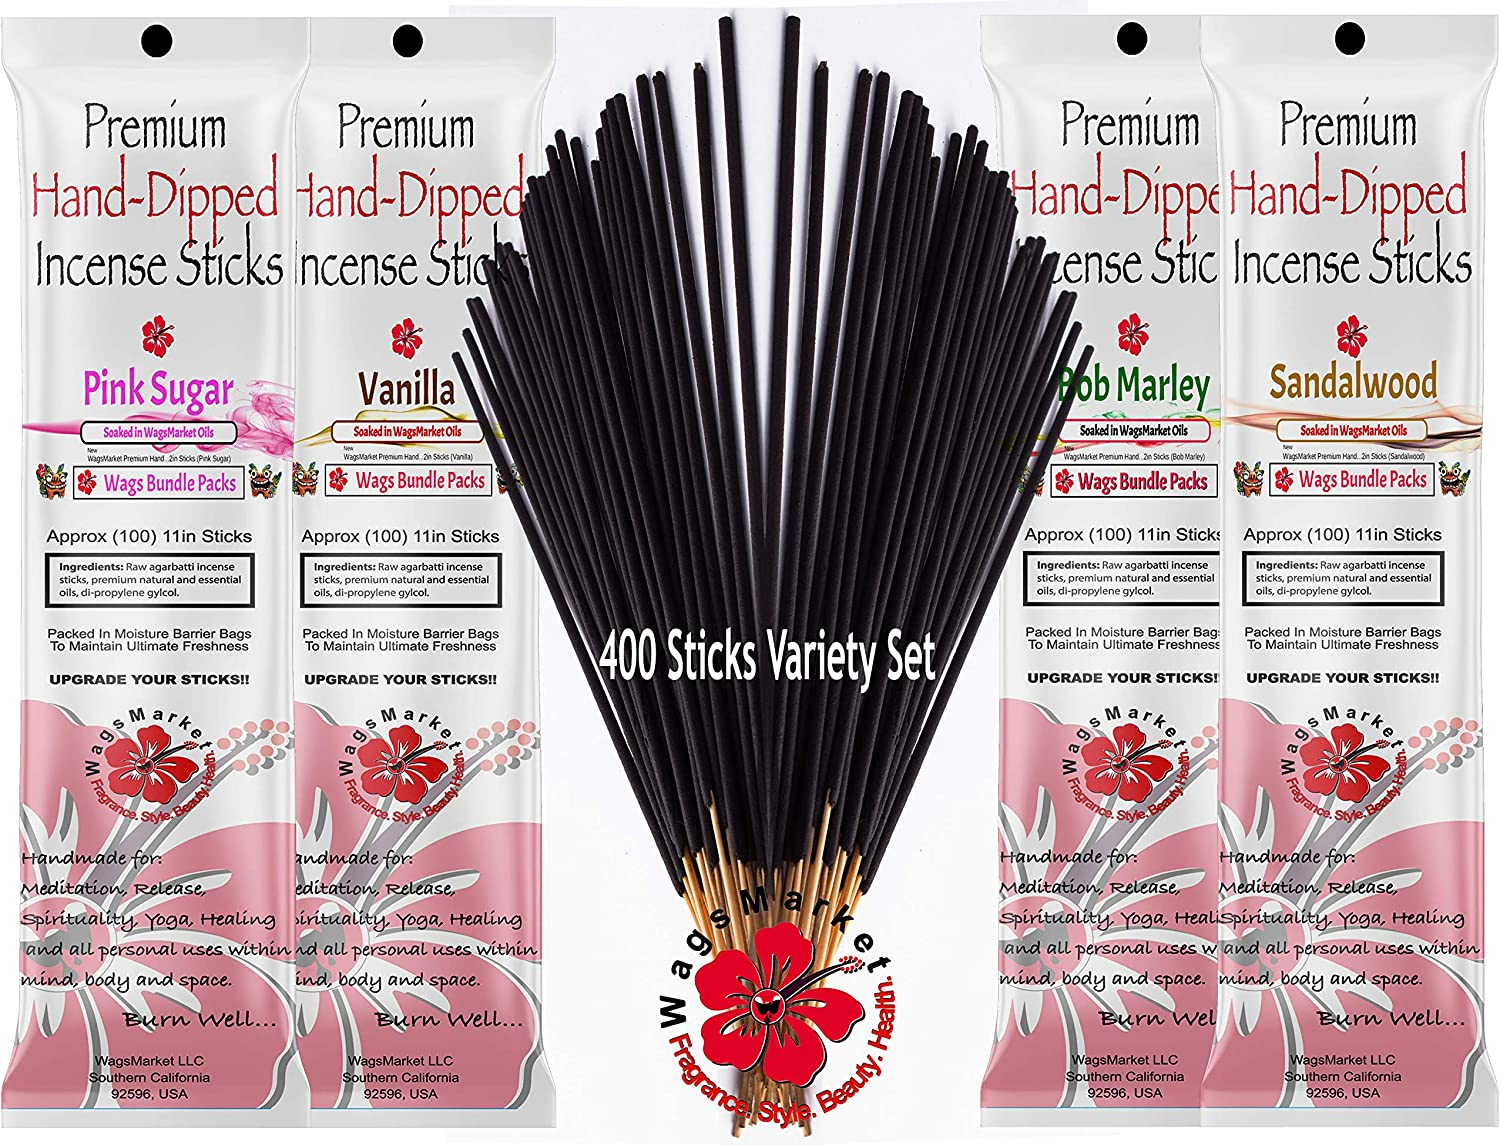 WagsMarket Premium Hand Dipped Incense Sticks, 400 Stick Variety Bundle Packs (The Cool Bunch)